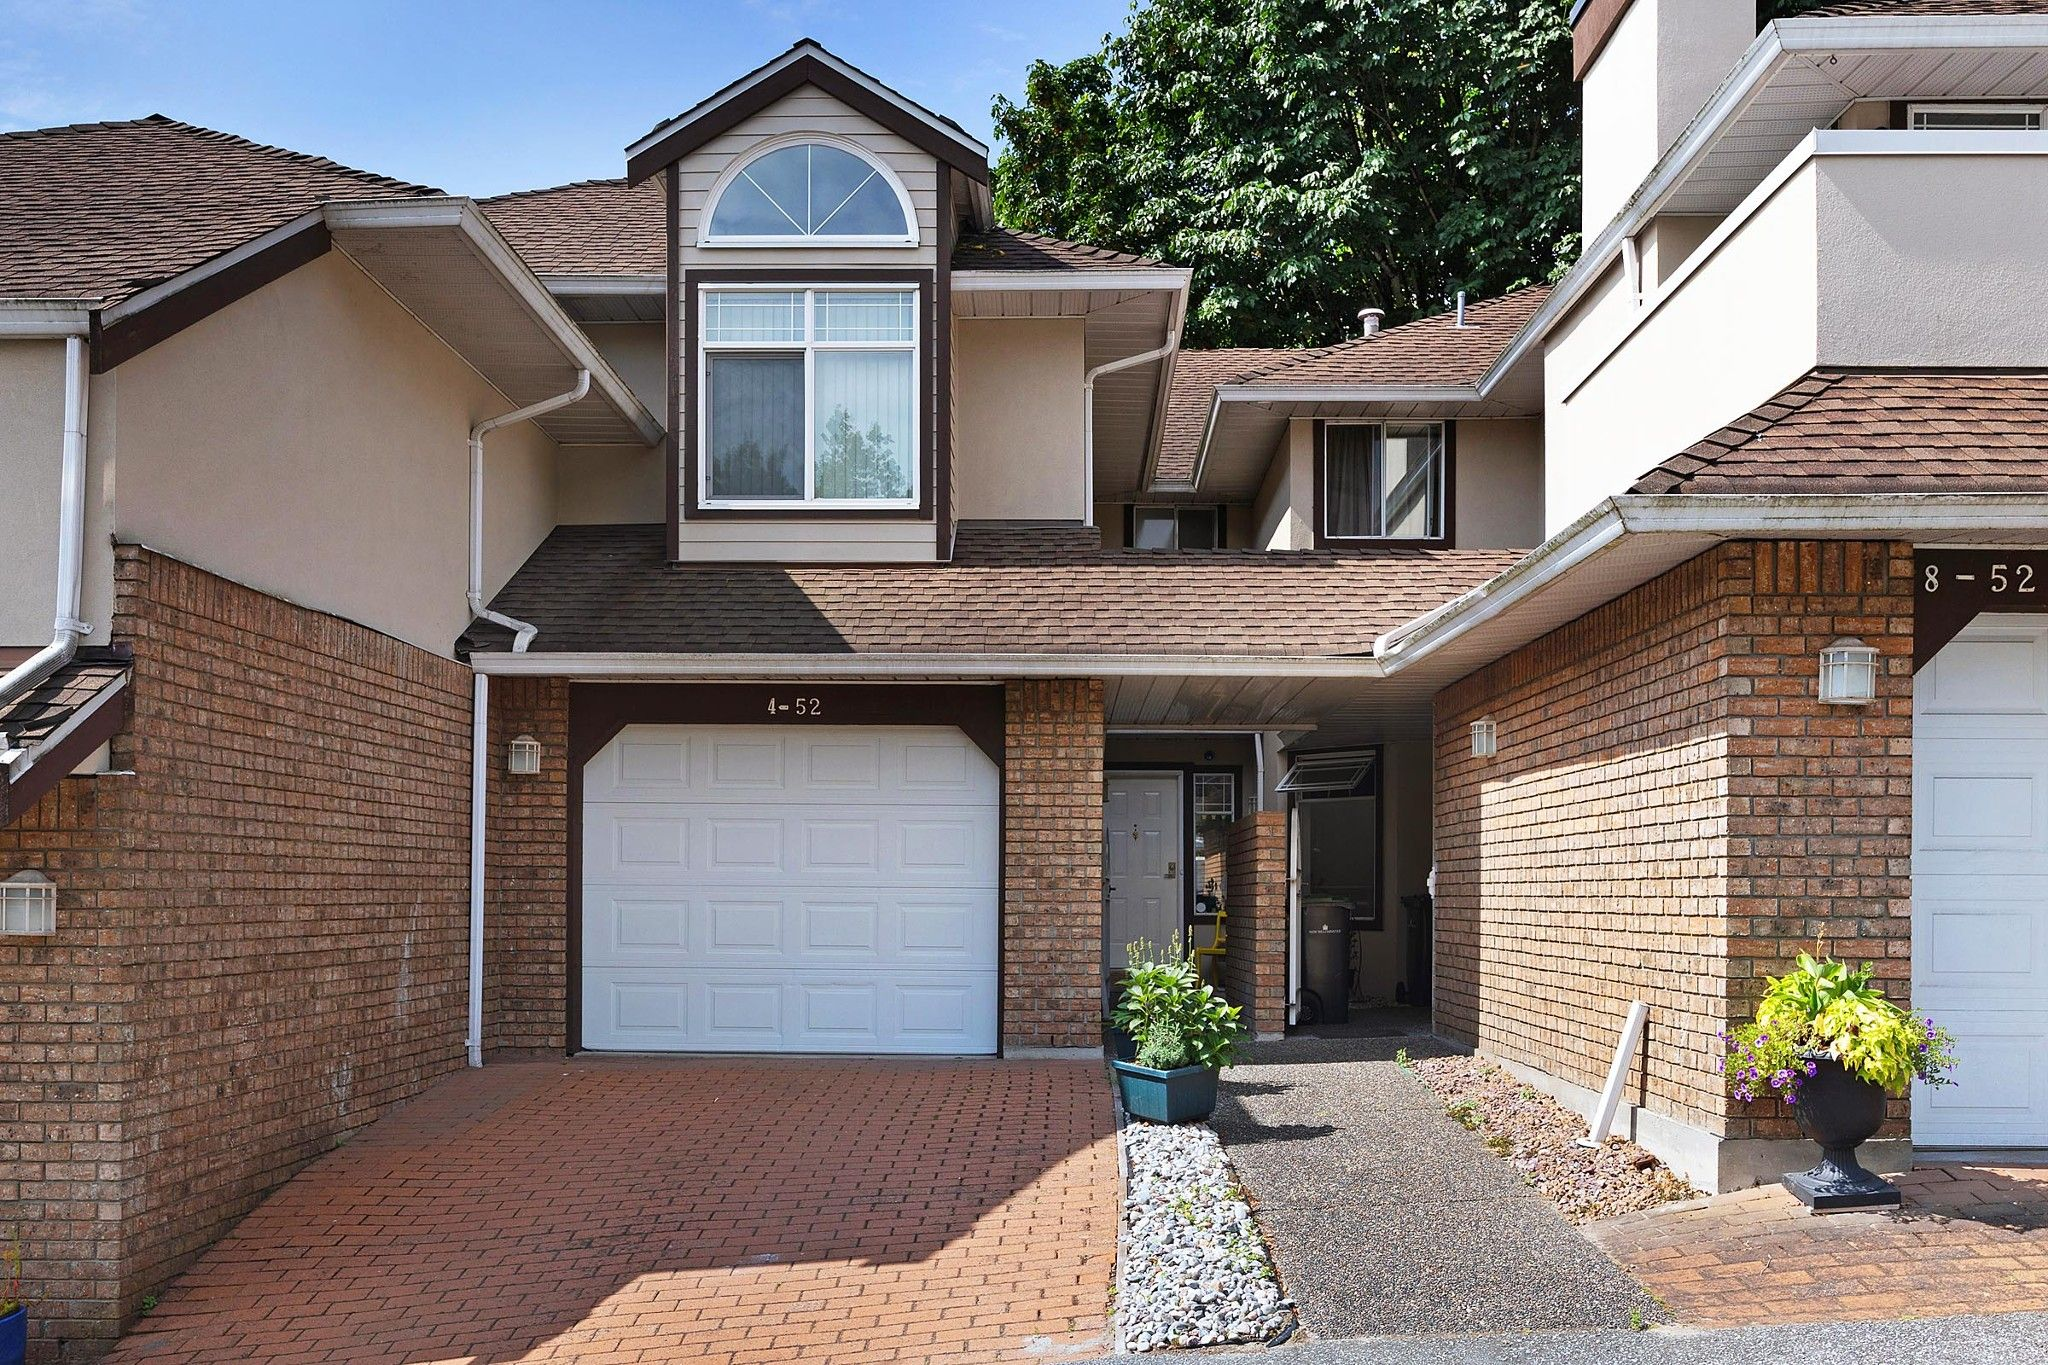 """Main Photo: 4 52 RICHMOND Street in New Westminster: Fraserview NW Townhouse for sale in """"FRASERVIEW PARK"""" : MLS®# R2486209"""